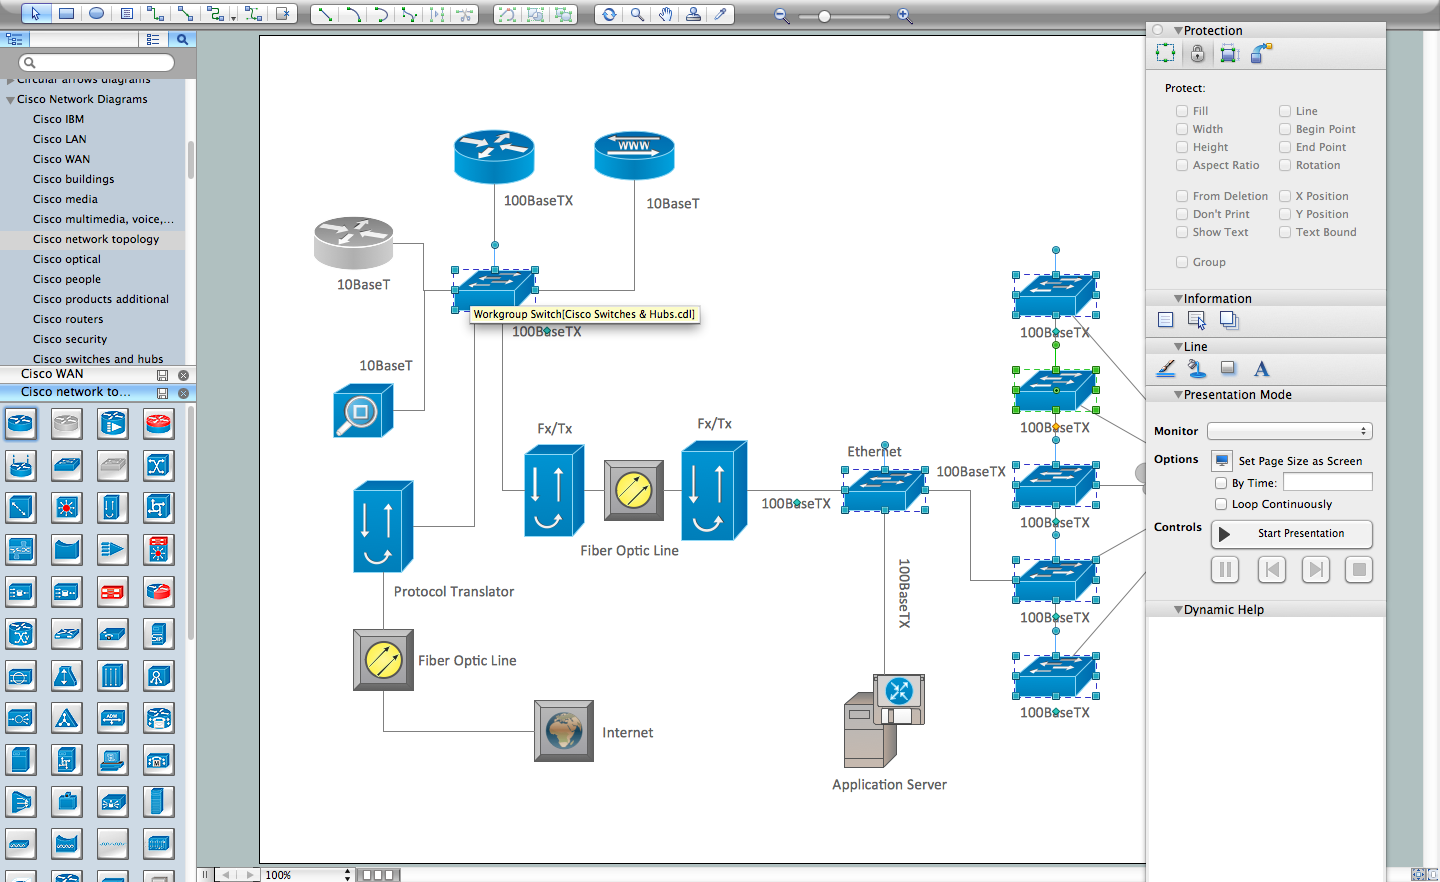 cisco network diagram software - Creating Network Diagram